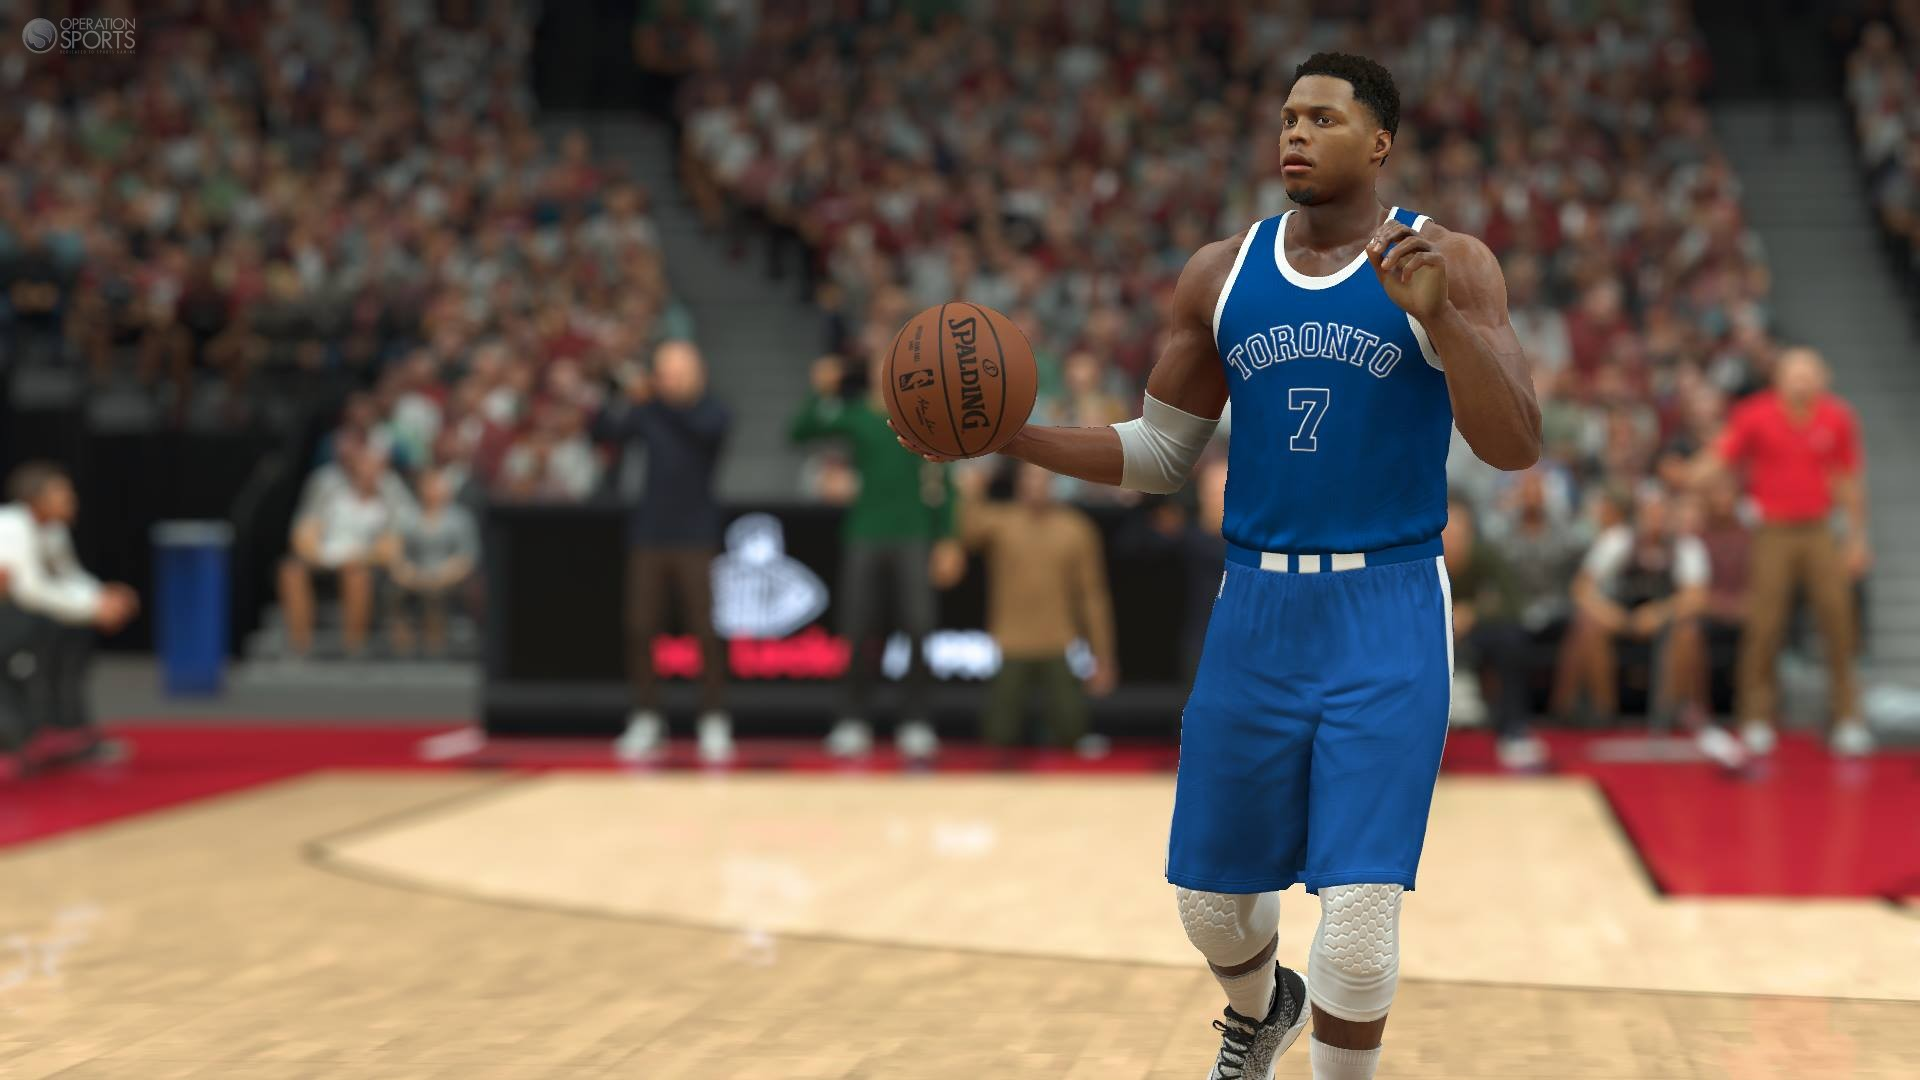 Sony Enters E-Sports Arena, Launches Tournaments Feature – Starting with NBA 2K17